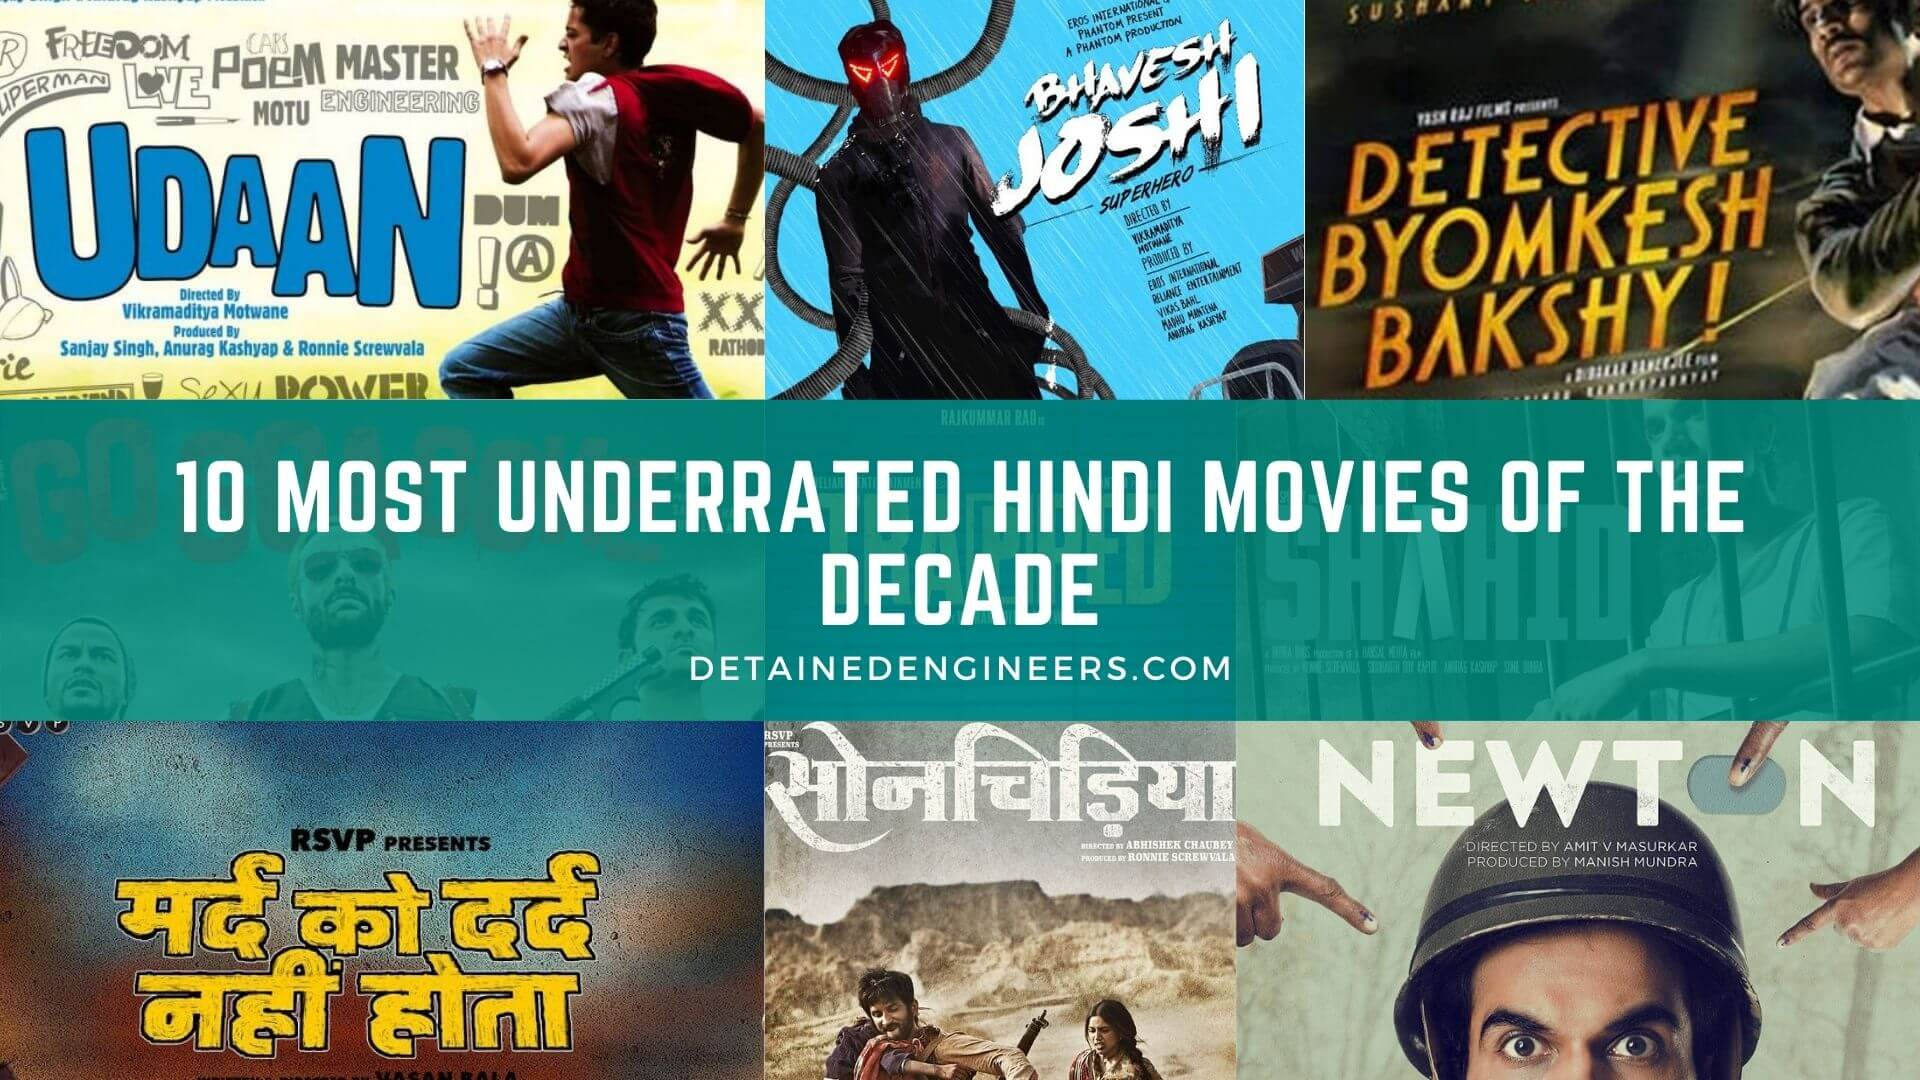 10 Most Underrated Hindi Movies of the Decade